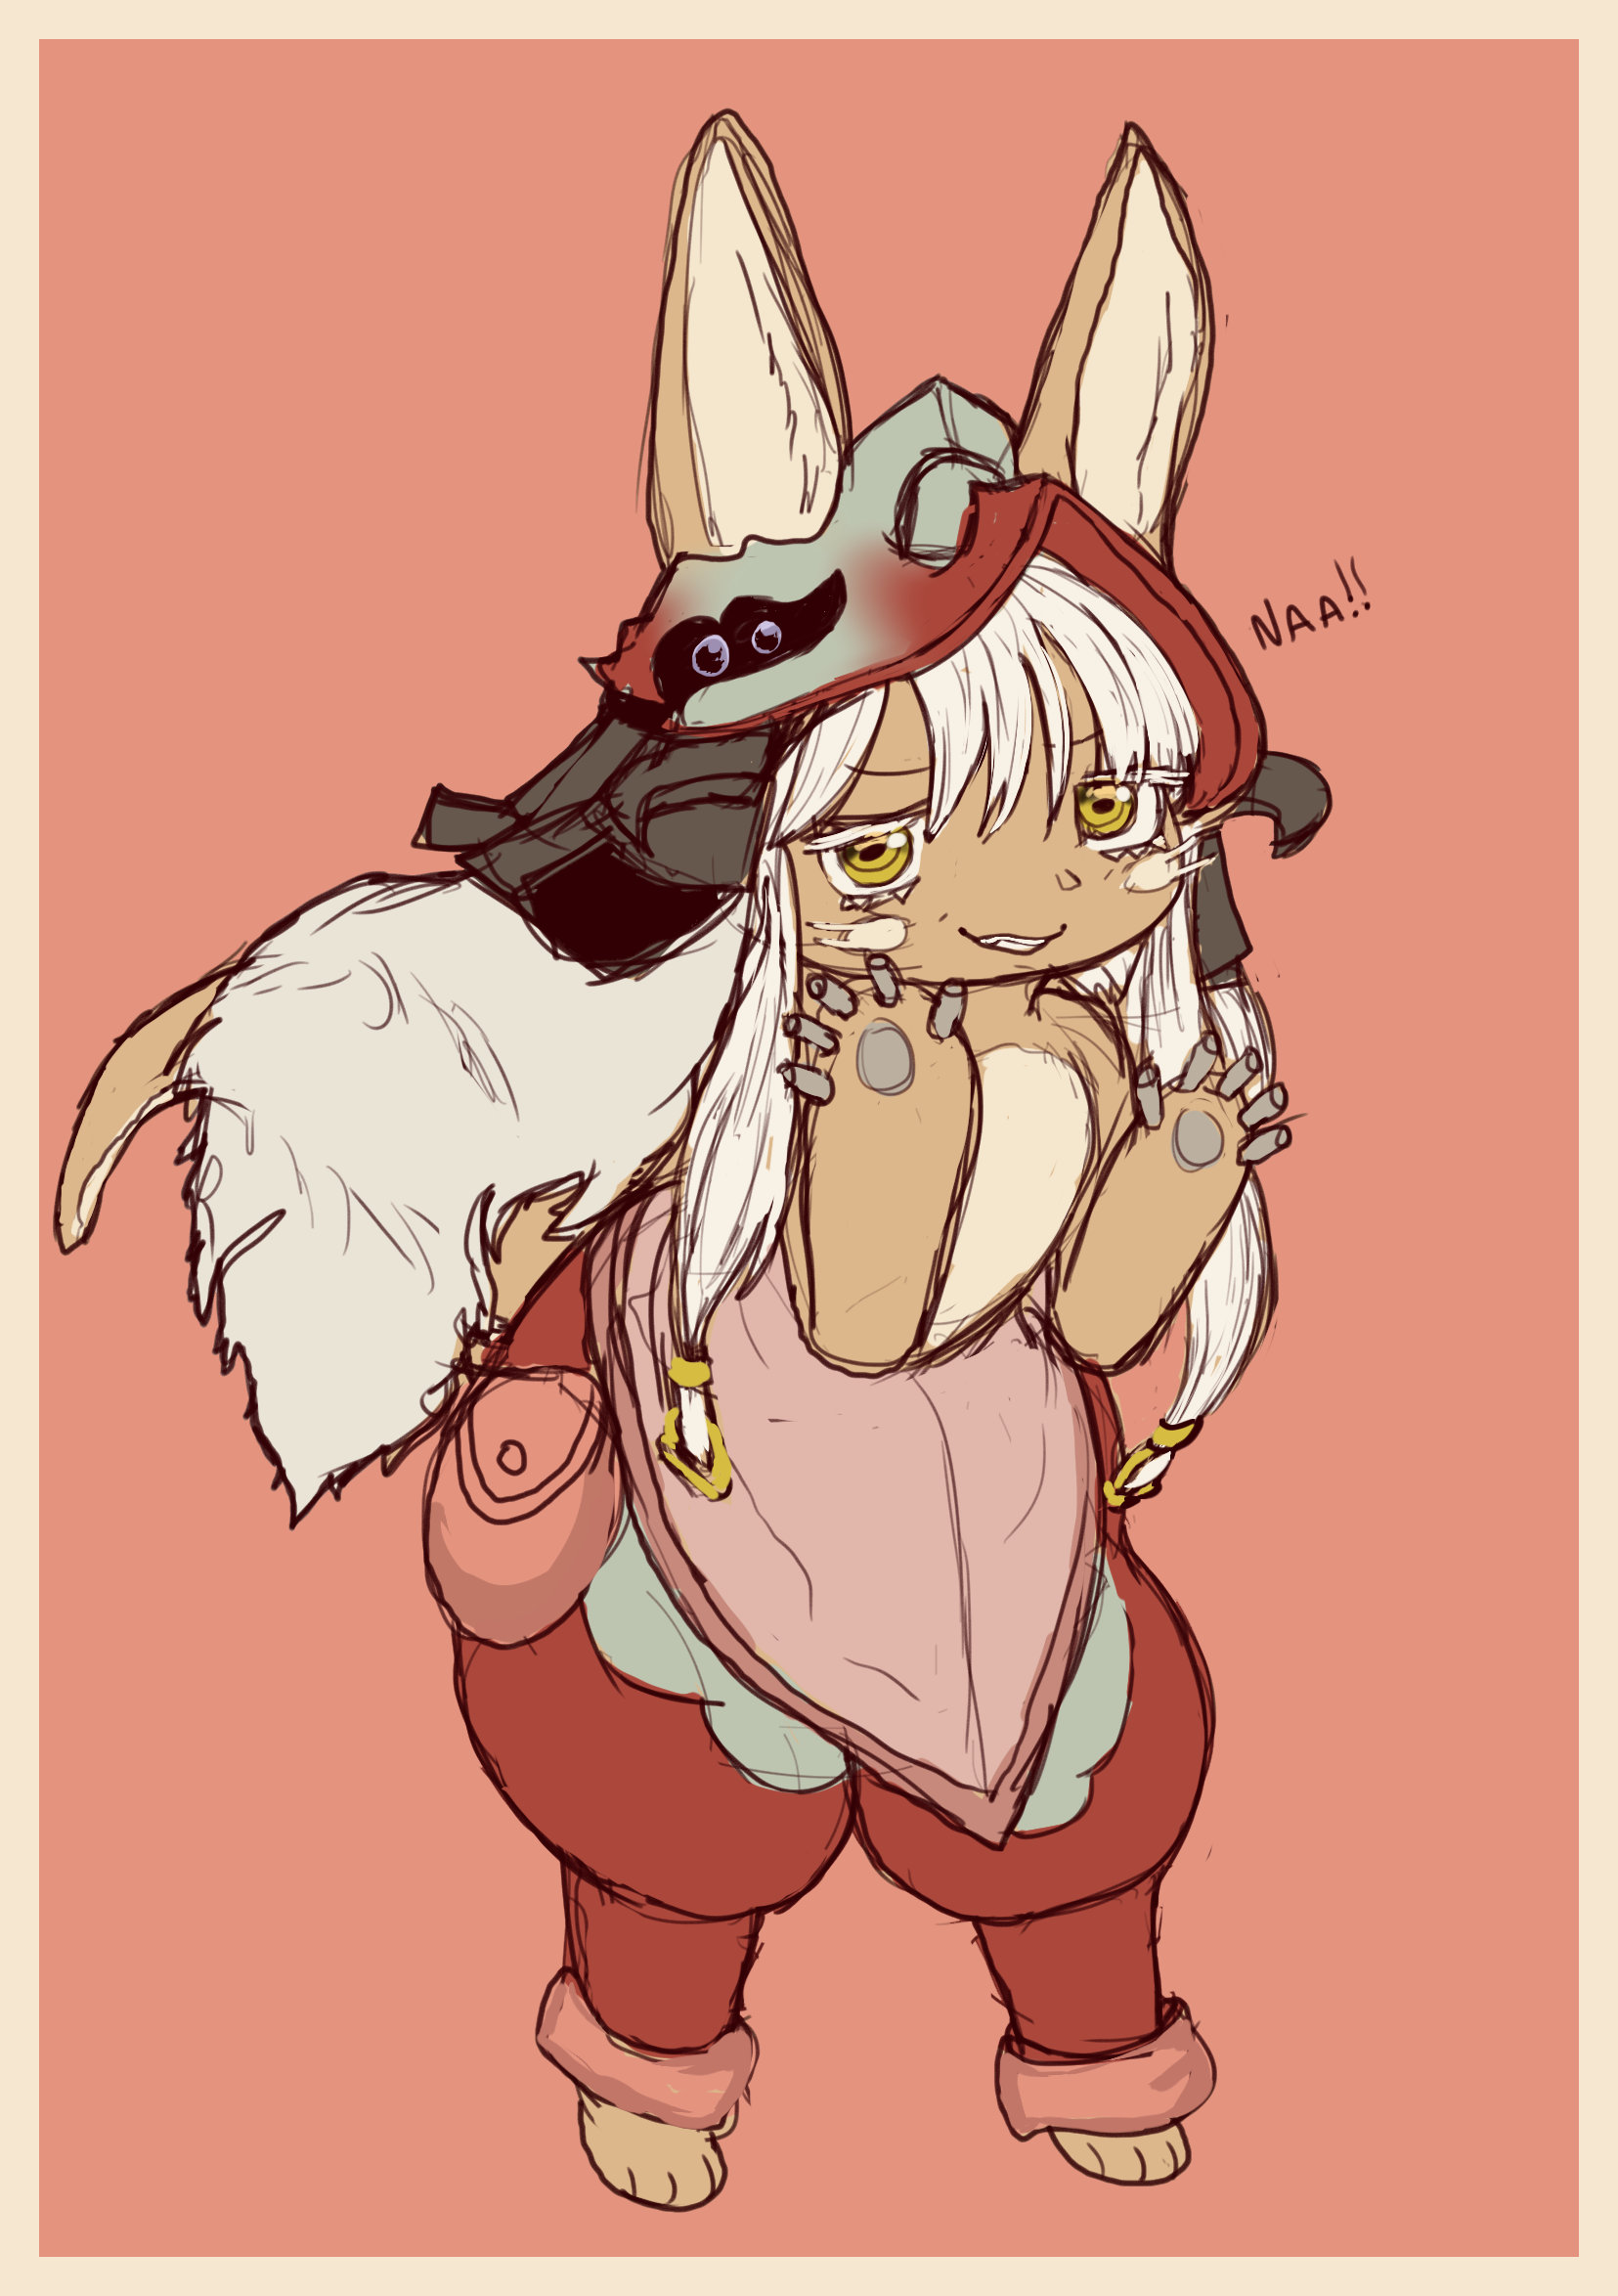 Nanachi being smug